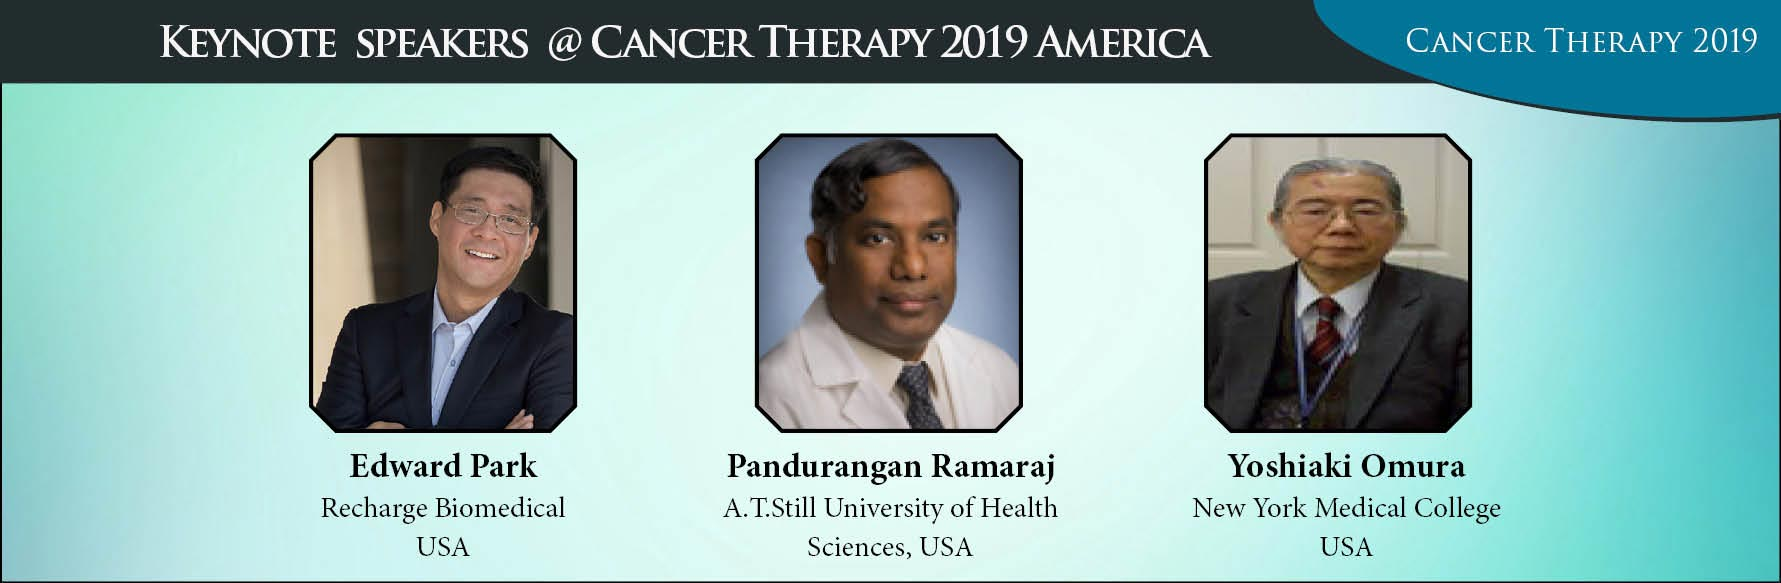 - Cancer Therapy 2019 America